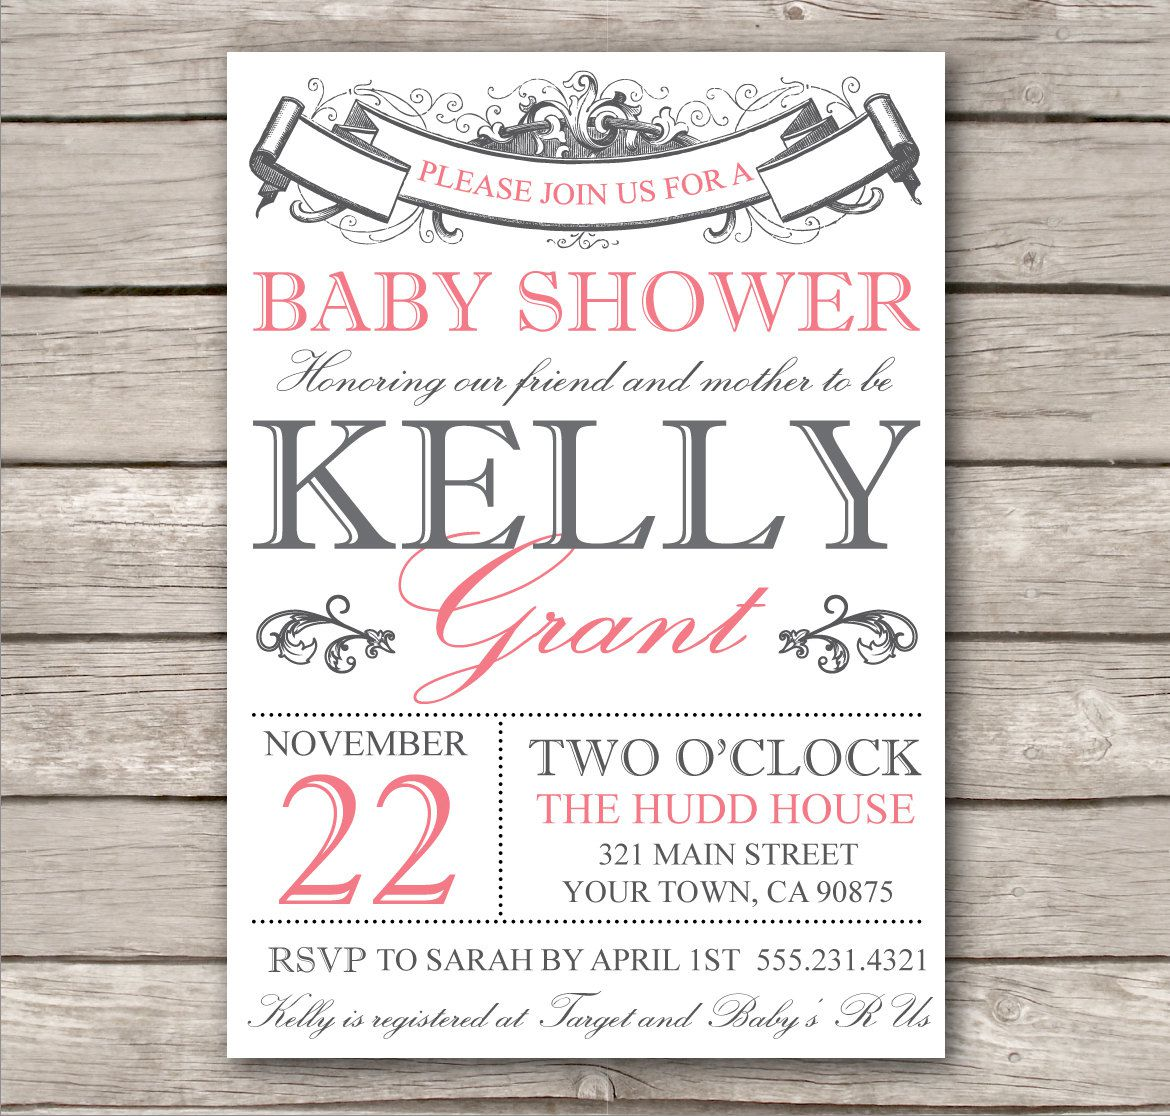 Templates Flights Baby Shower Invitations At Party City Flights